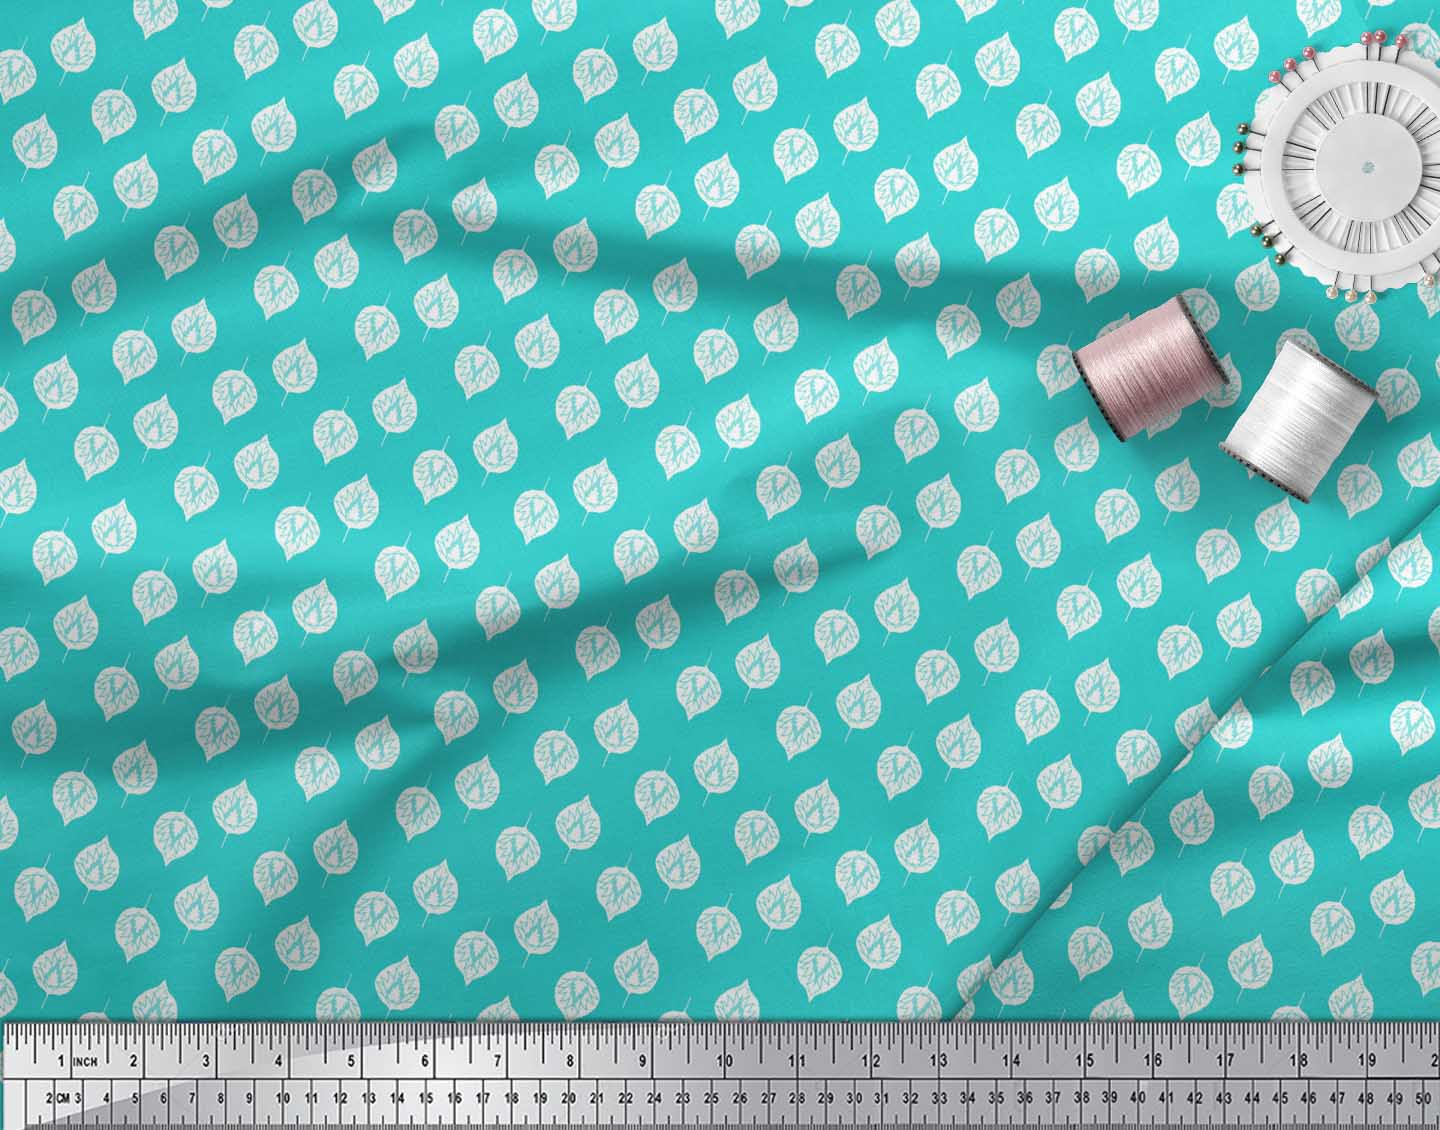 Soimoi-Green-Cotton-Poplin-Fabric-Rose-Leaves-Printed-Craft-Fabric-ly6 thumbnail 4